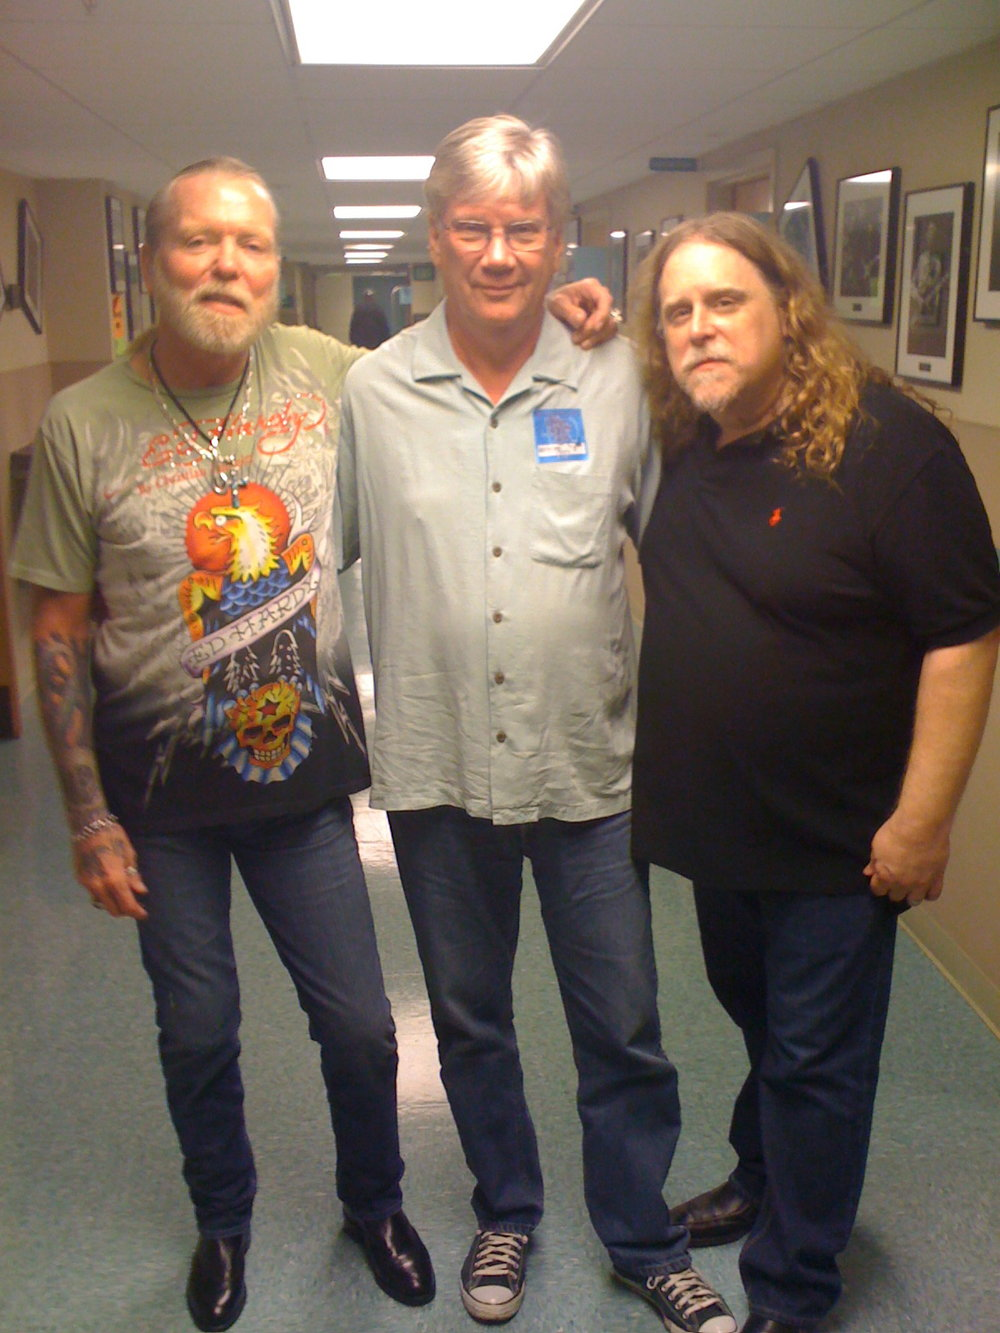 Greg Allman & Daking backstage